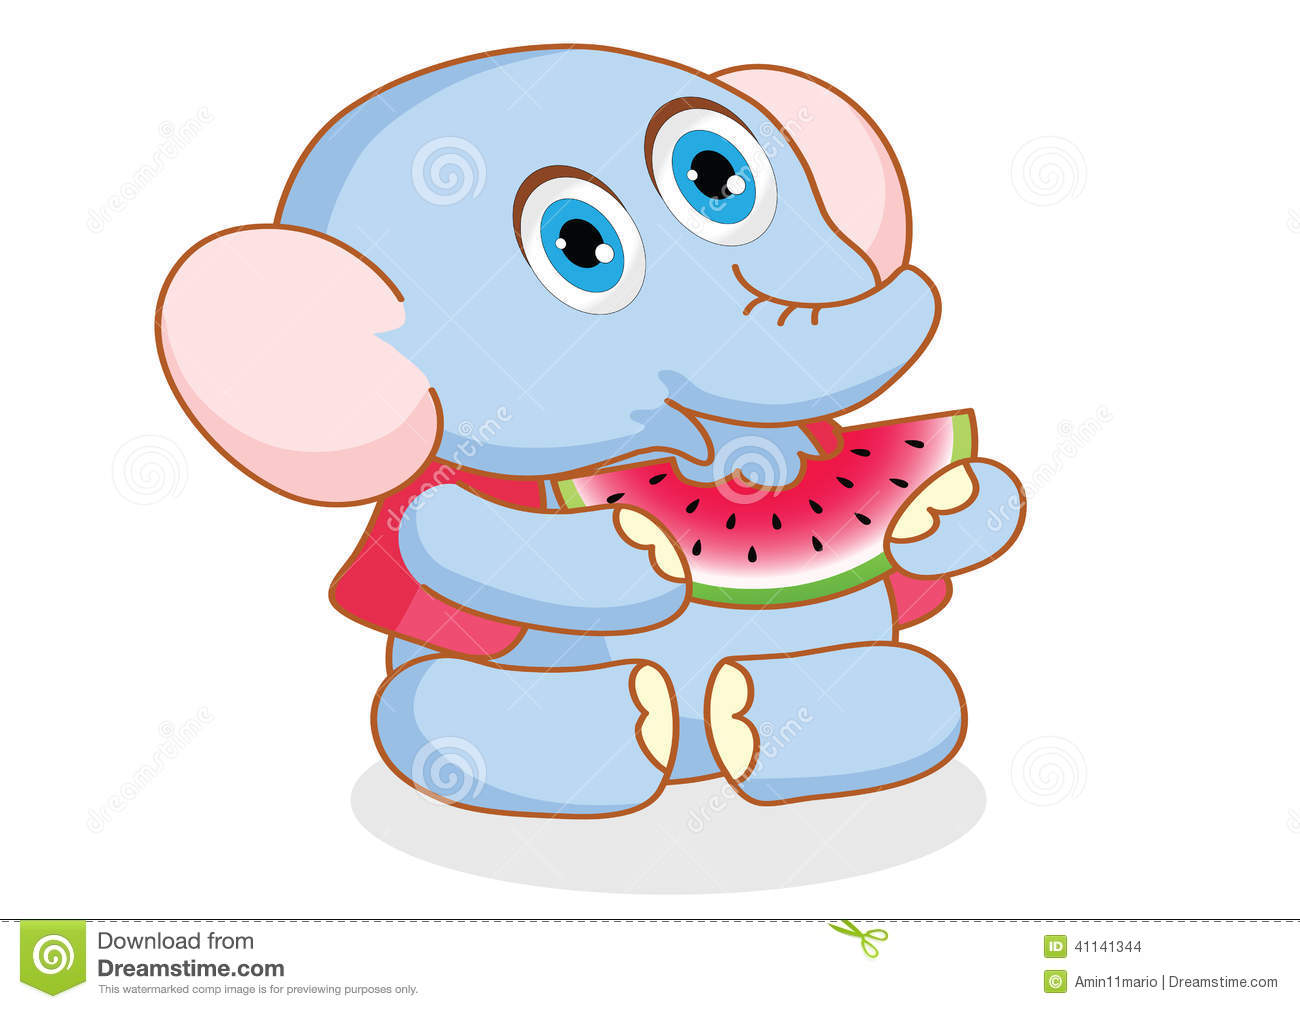 animals eating clipart - photo #31